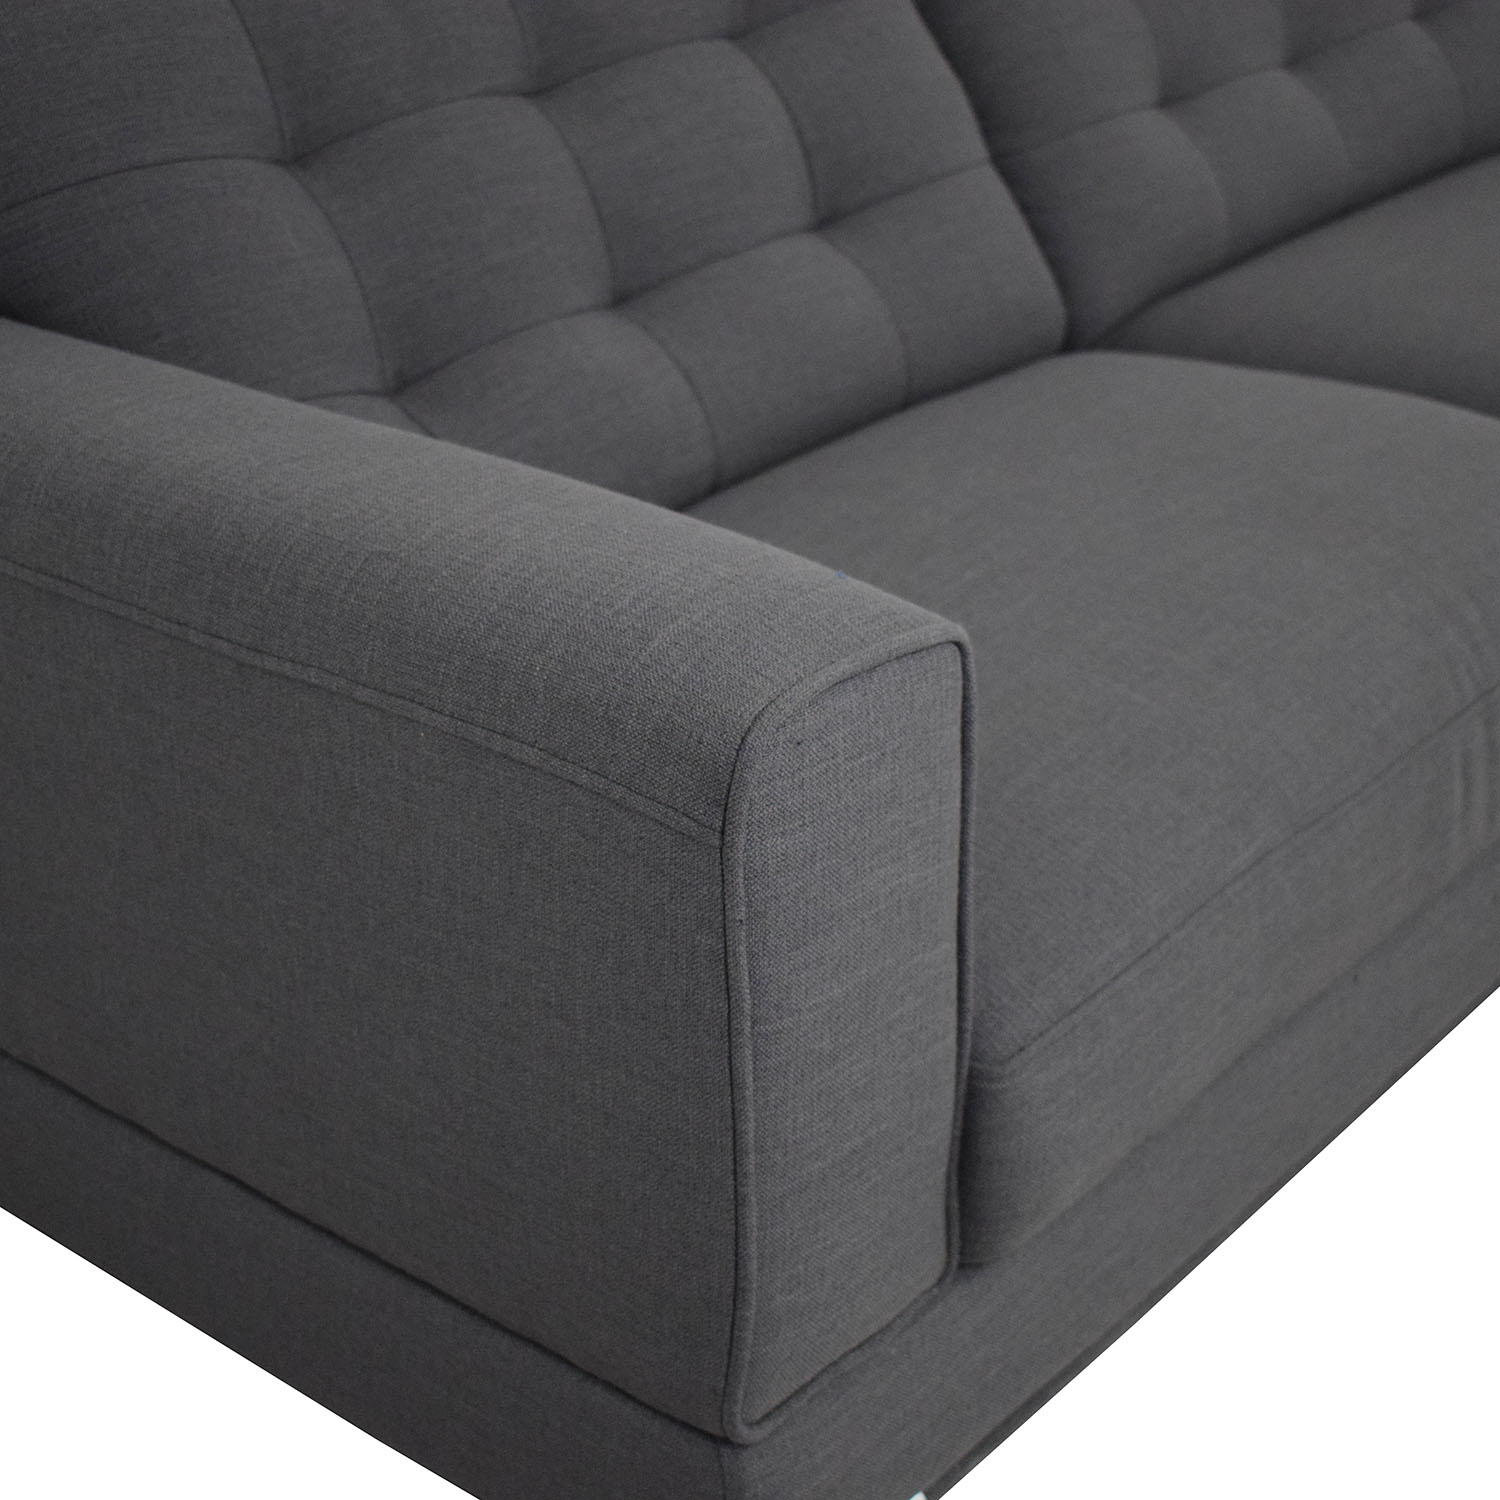 Modani Modani Sectional Sofa with Chaise for sale